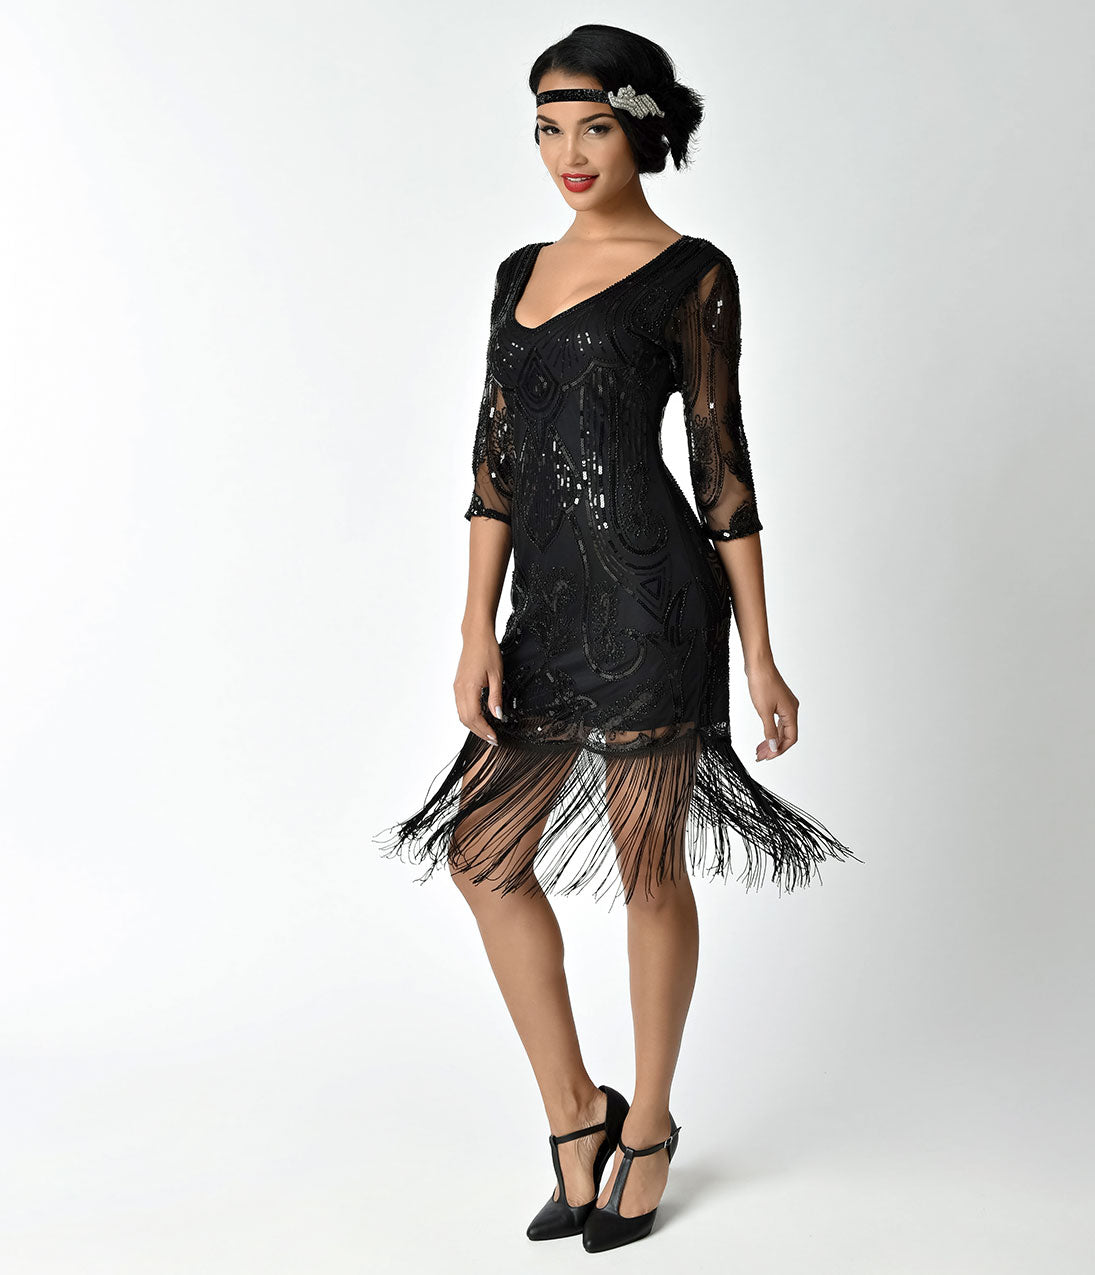 1920s Fashion & Clothing | Roaring 20s Attire Unique Vintage Black Beaded  Sequin Margaux Sleeved Fringe Cocktail Dress $110.00 AT vintagedancer.com